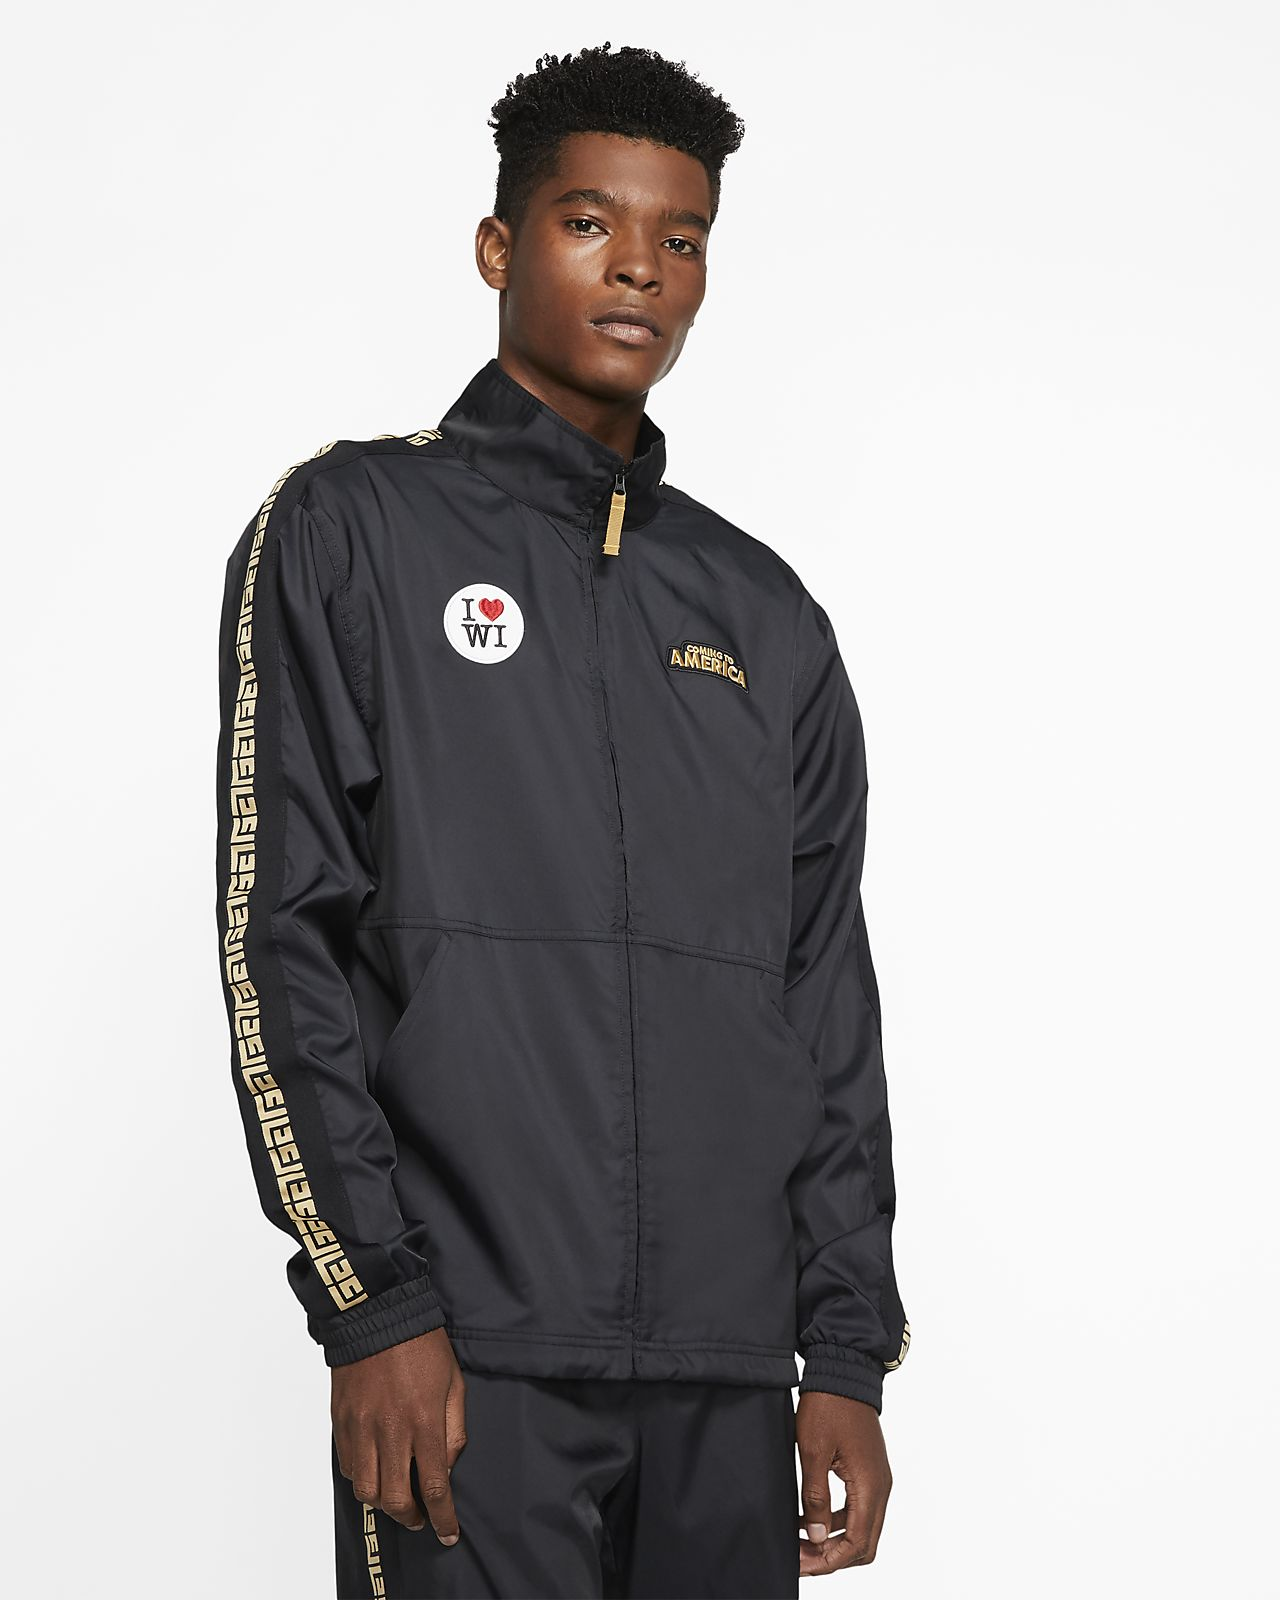 Giannis 'Coming to America' Men's Basketball Track Jacket